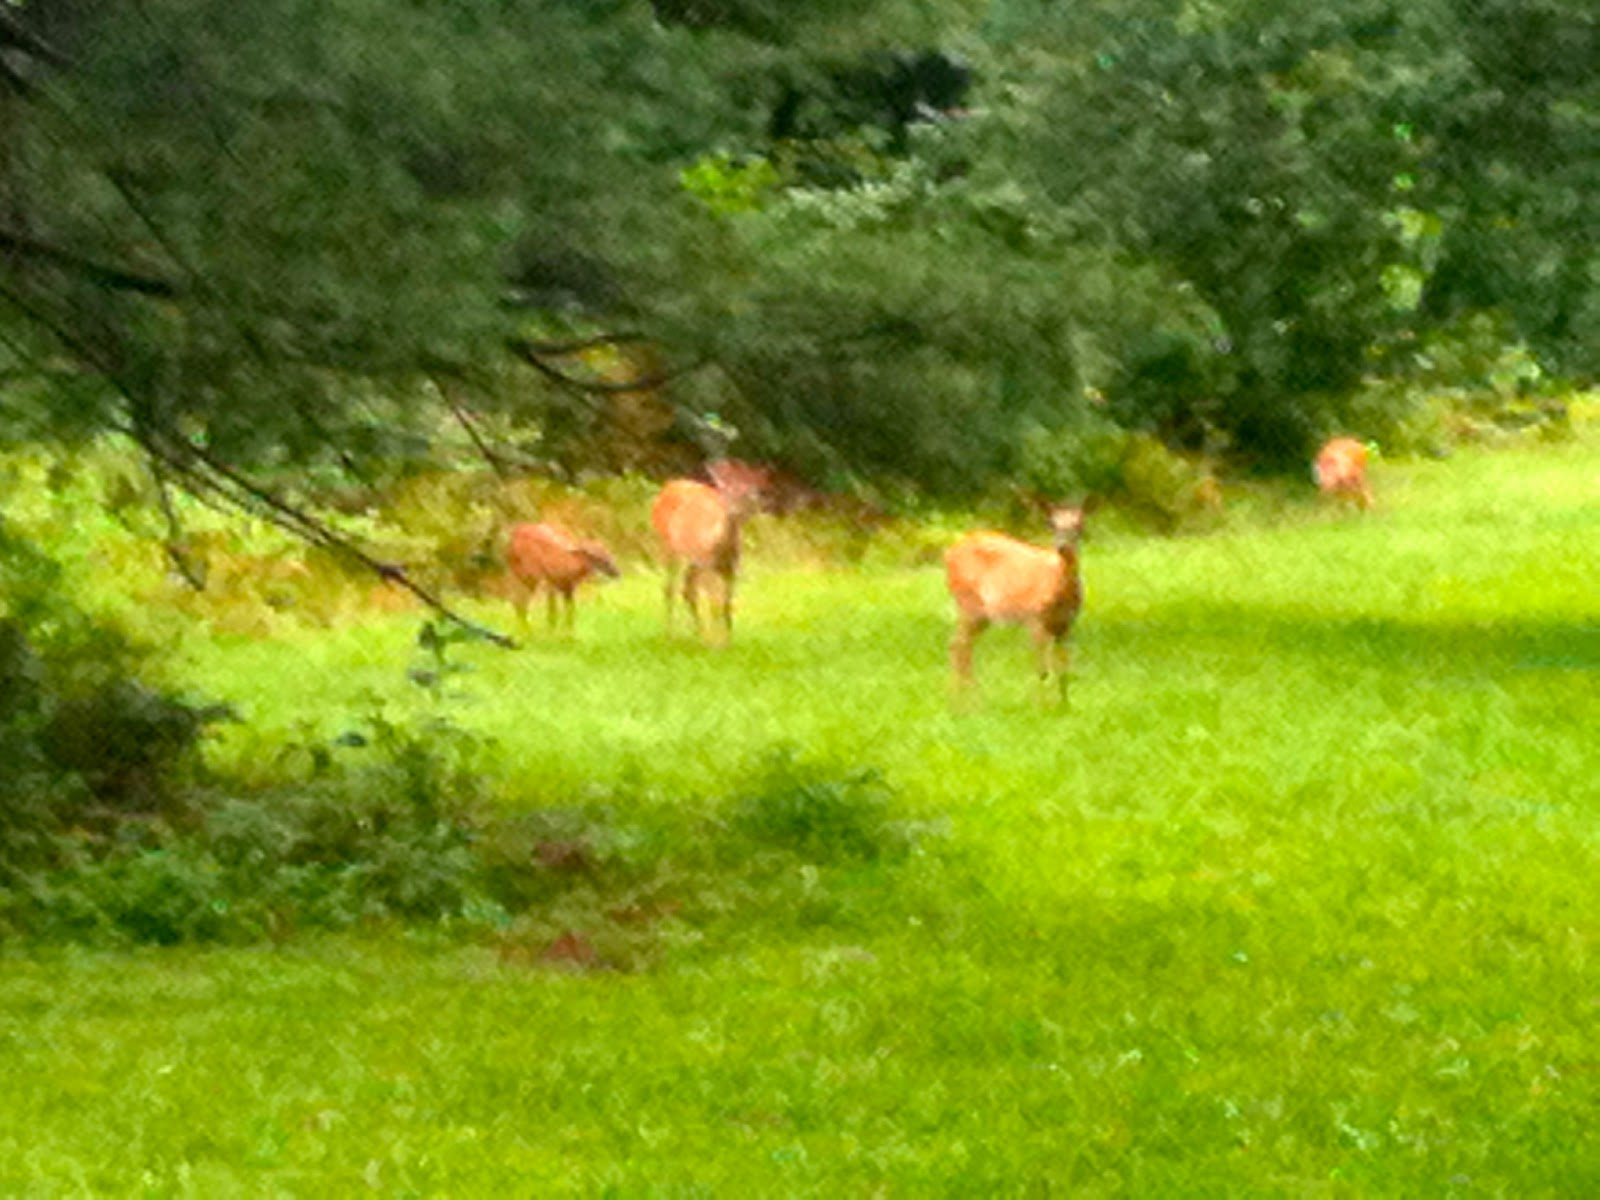 Deer at the Peaks of Otter Lodge - Blue Ridge Parkway - VA